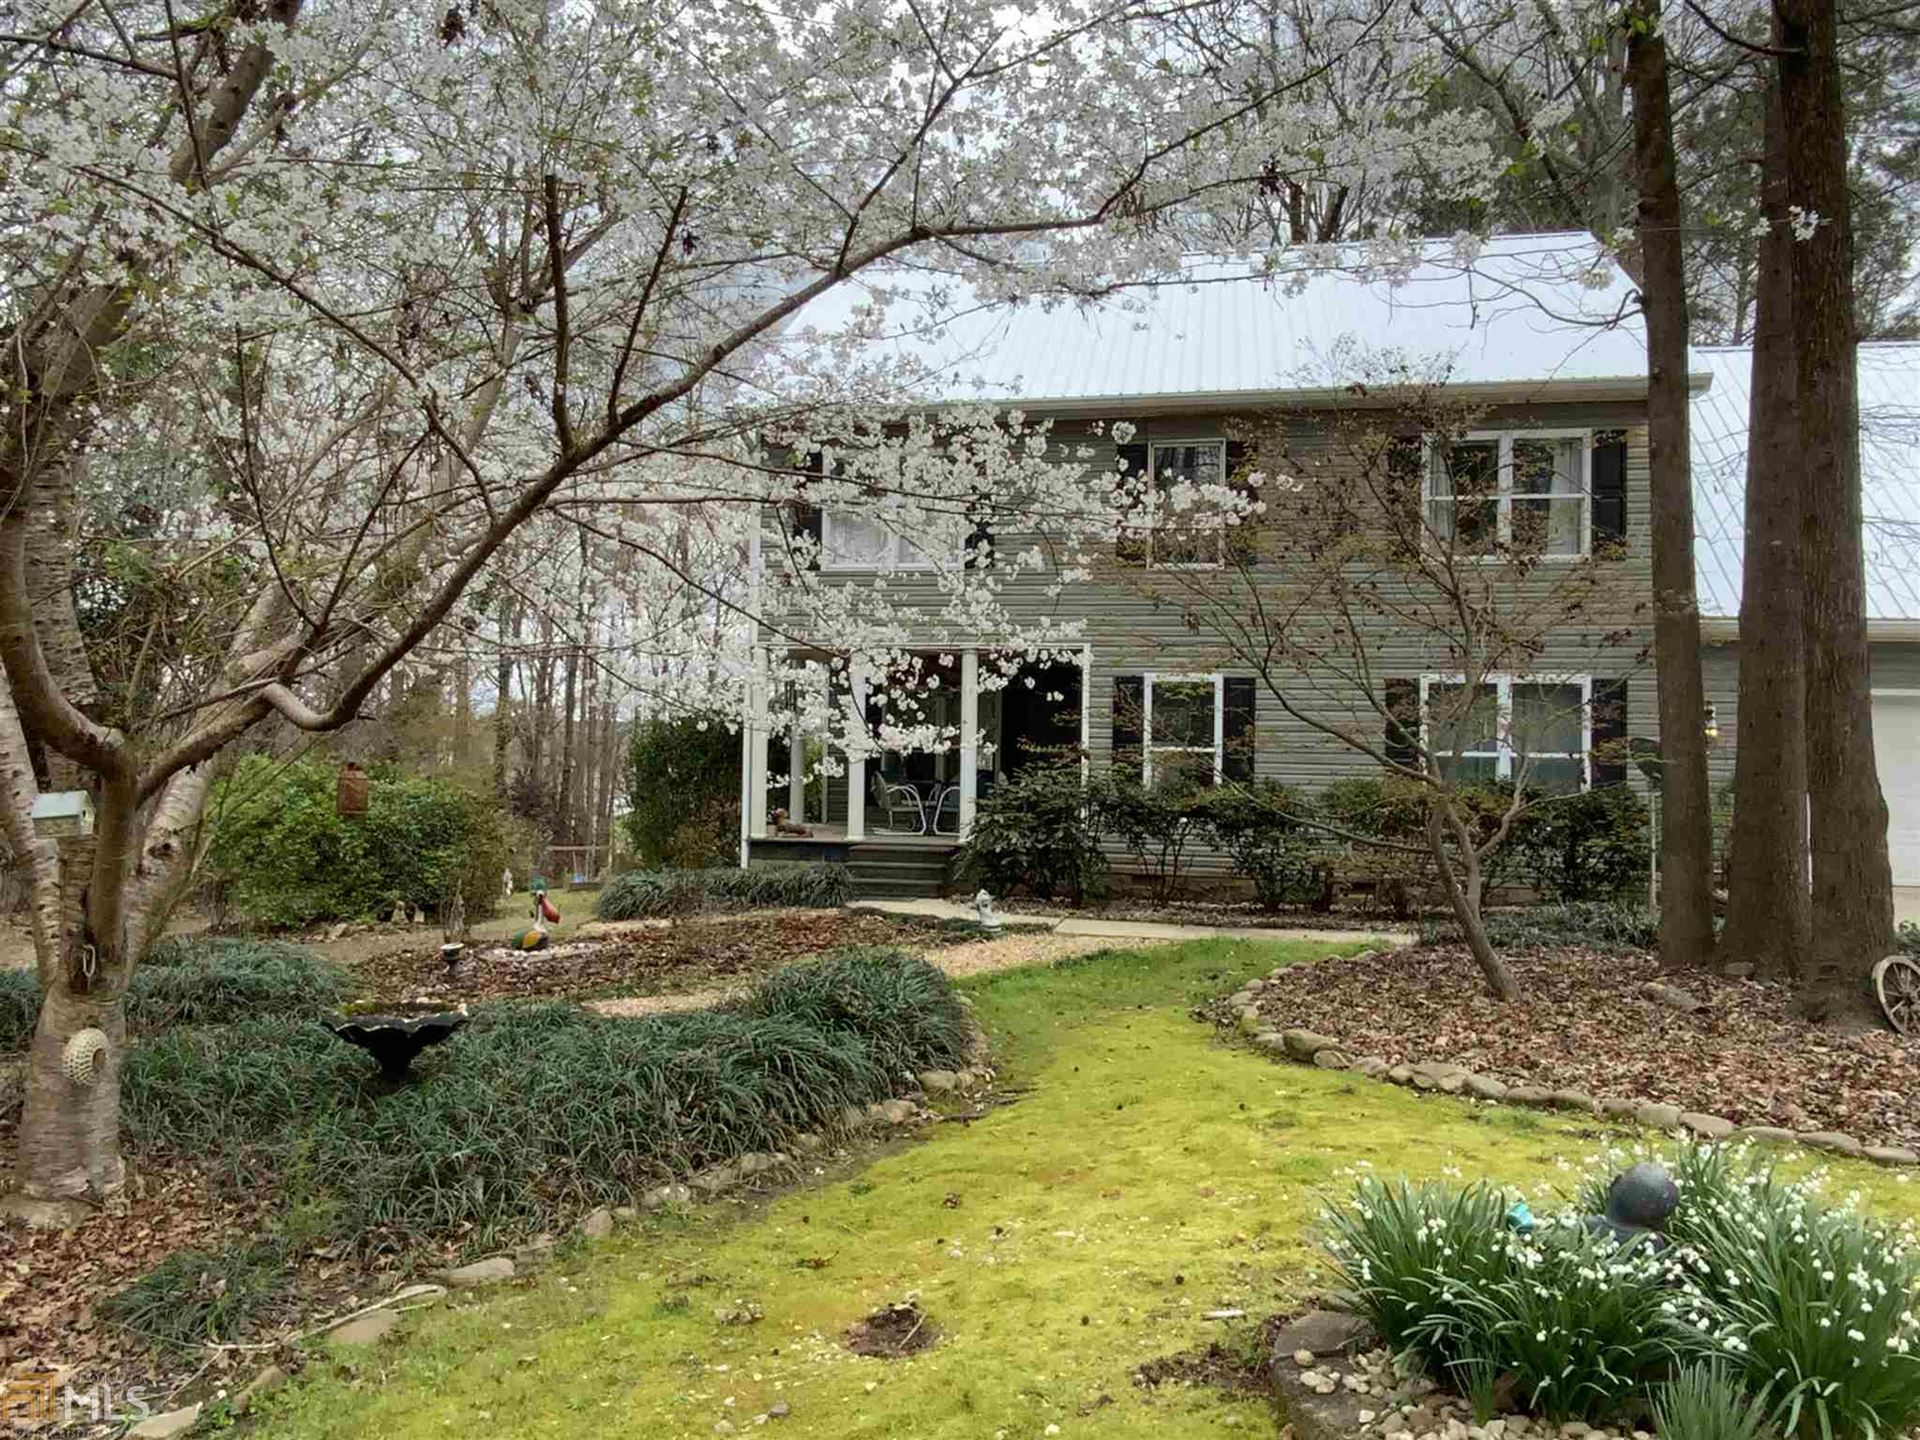 1161 Oconee Farms Rd, Greensboro, GA 30642 - MLS#: 8946398